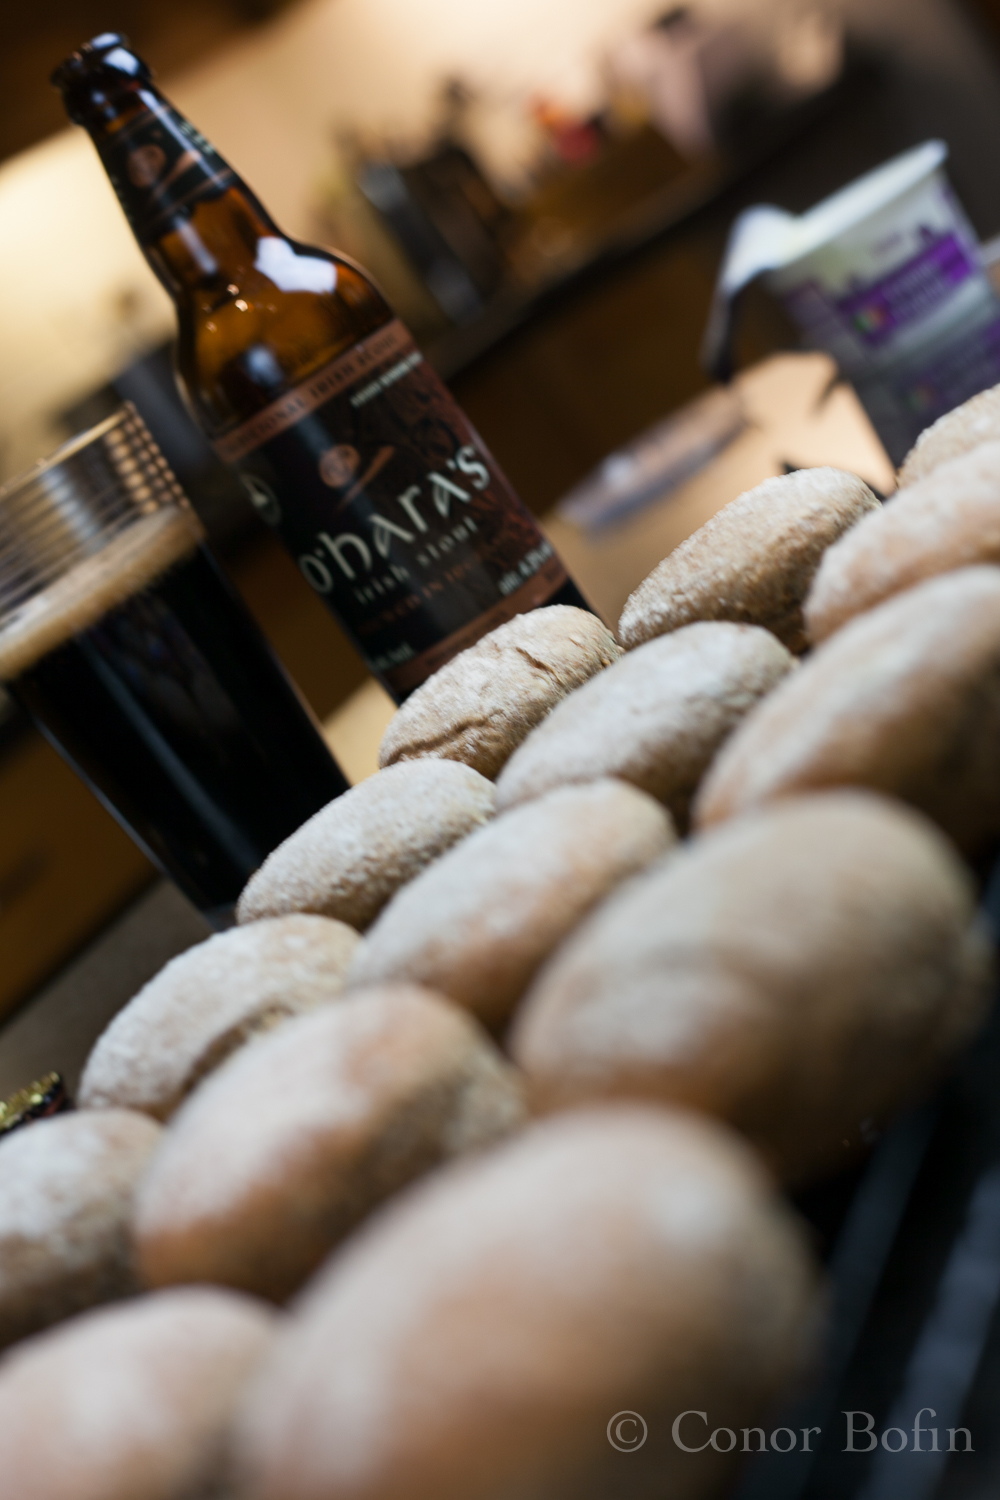 While the scones are cooling down, perhaps the other bottle of O'Hara's?